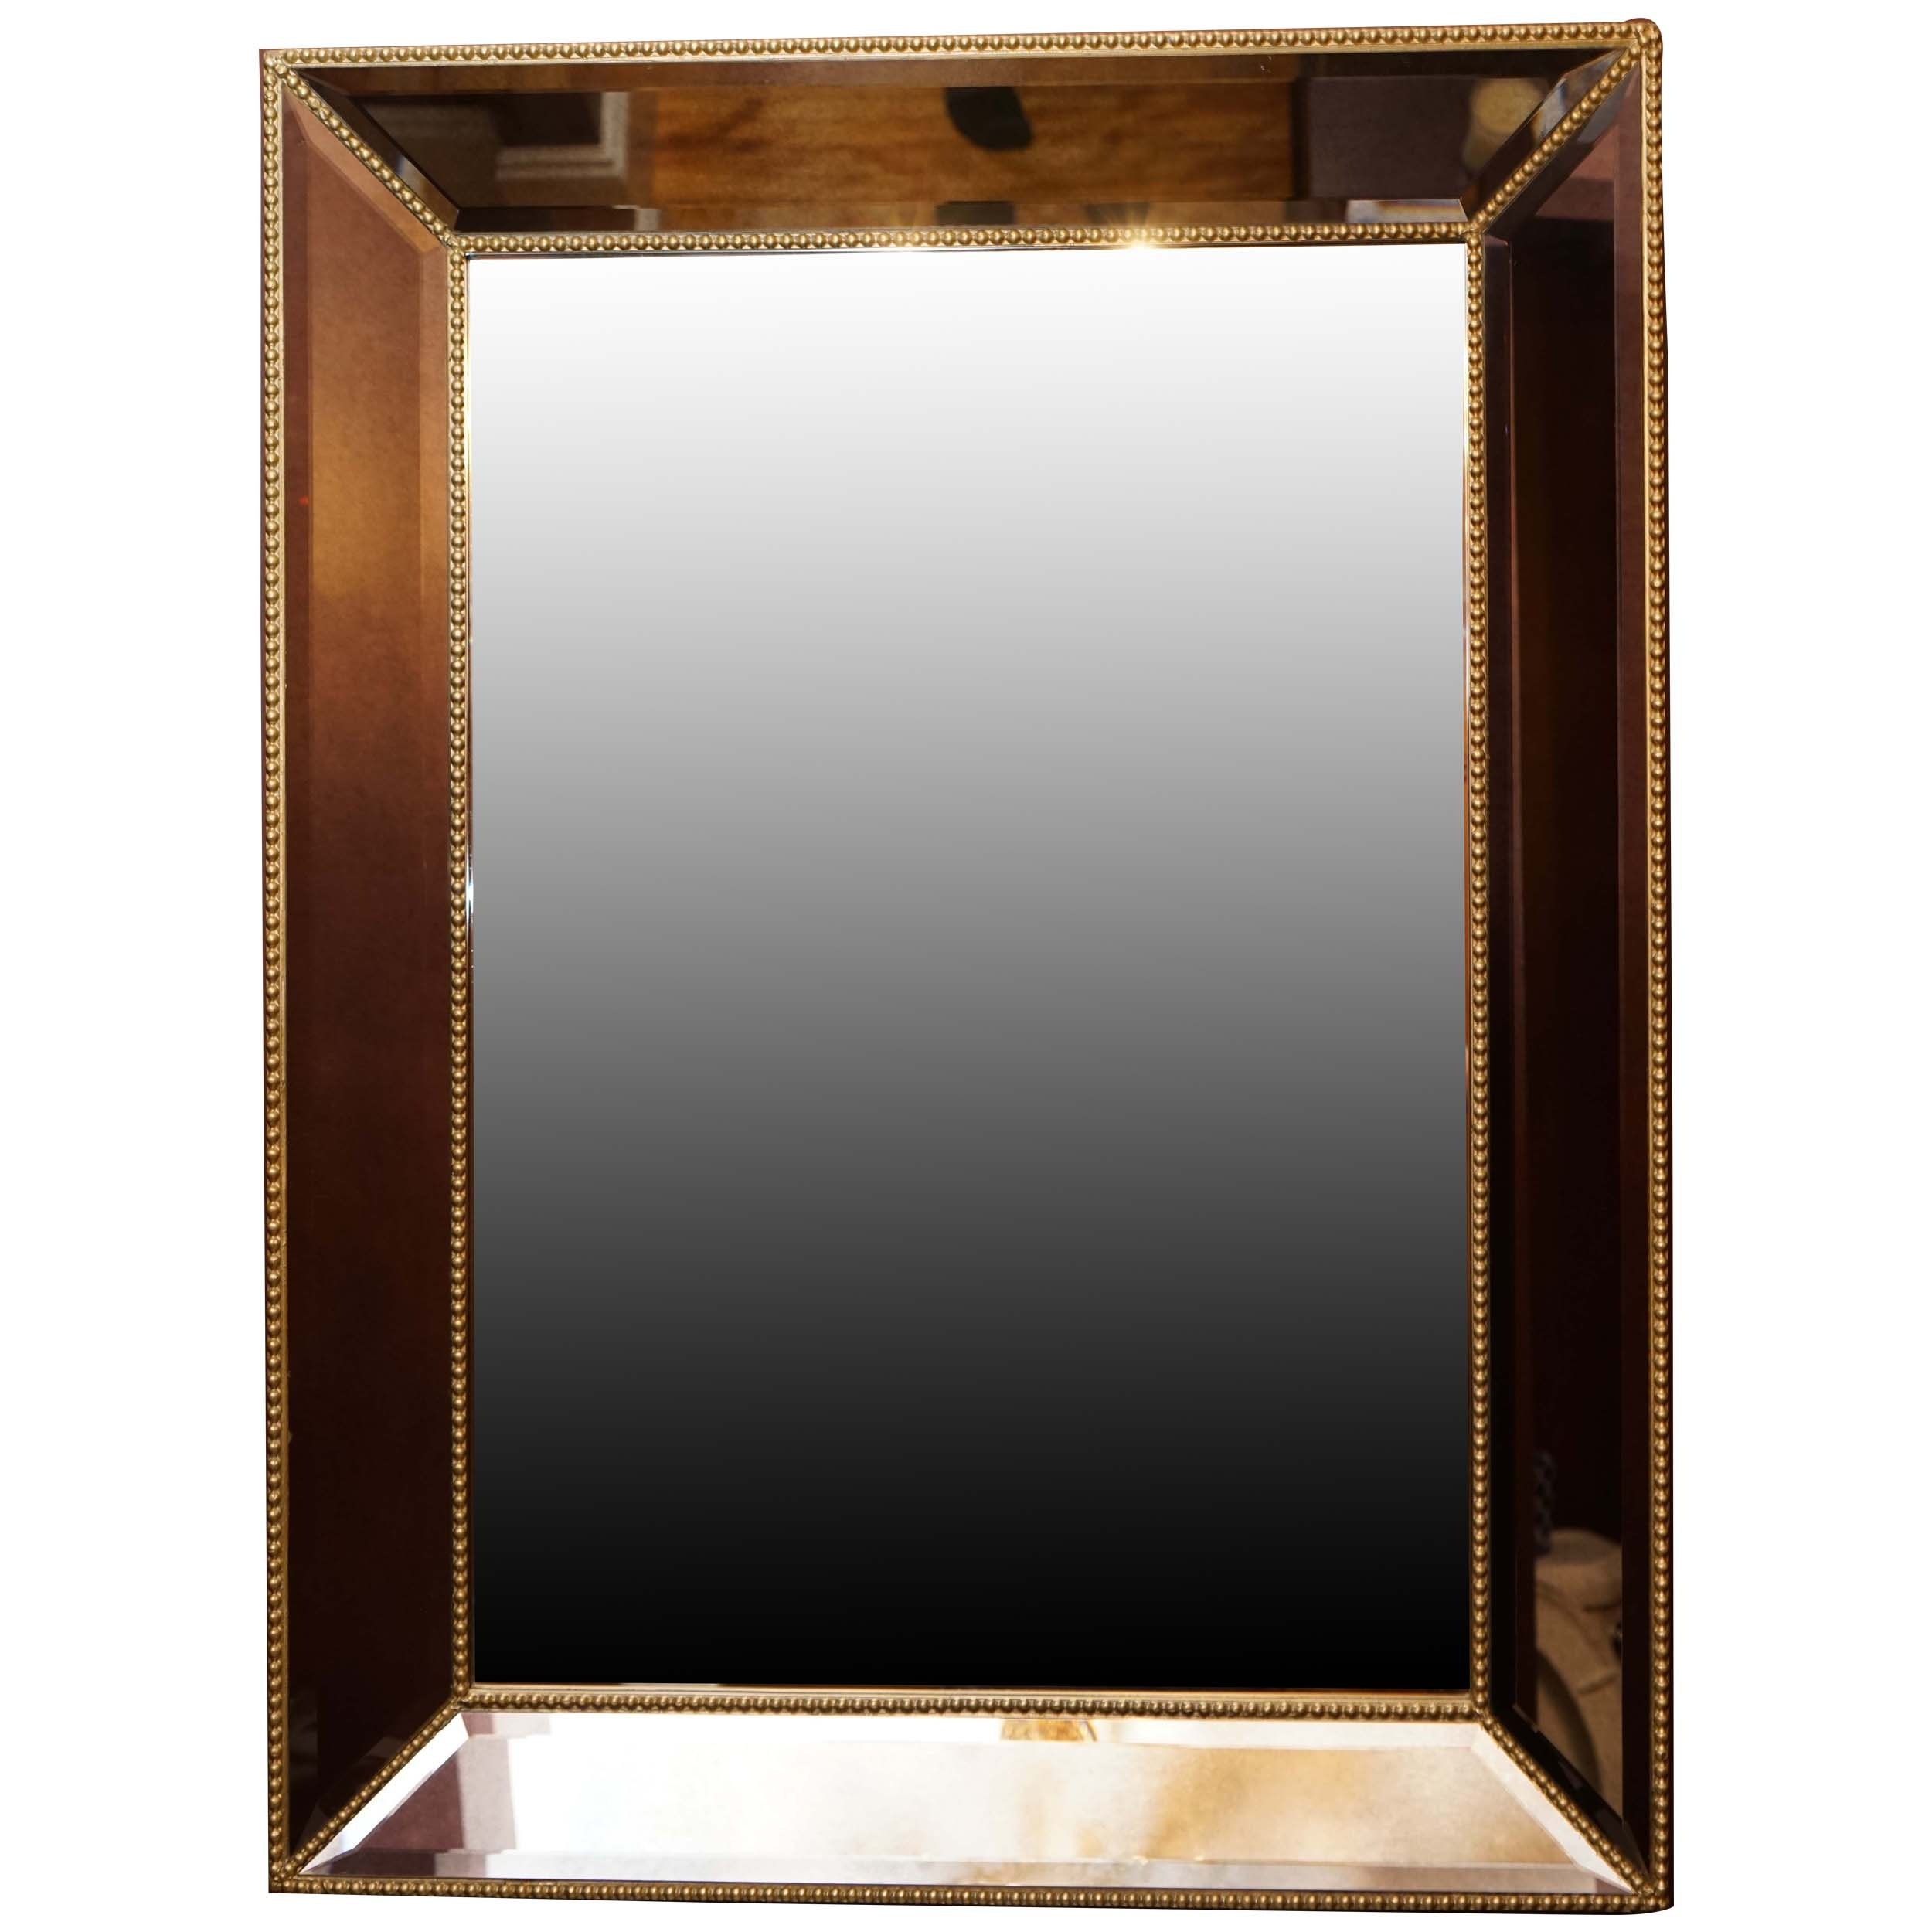 Wall Mirror With Mirrored Frame and Beadwork Detailing